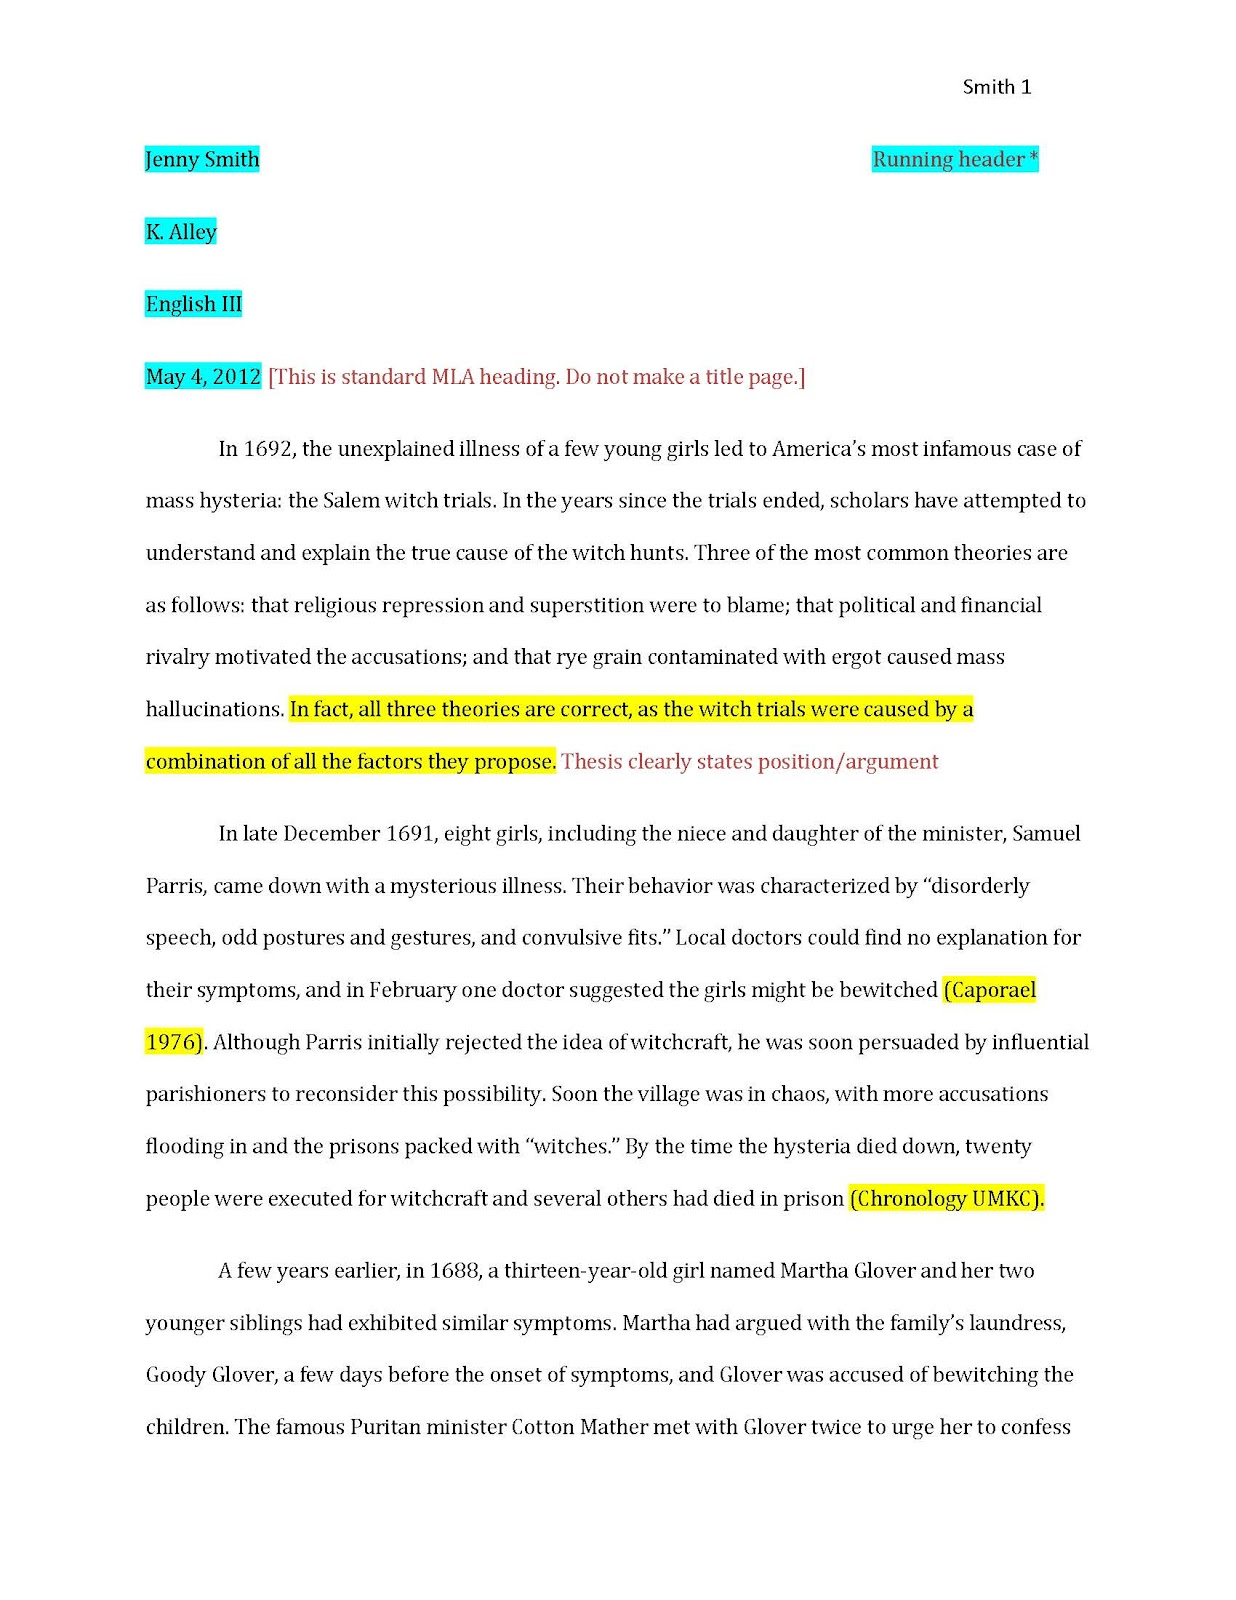 research essay with citations Free essays, research papers, term papers, and other writings on literature, science, history, politics, and more.